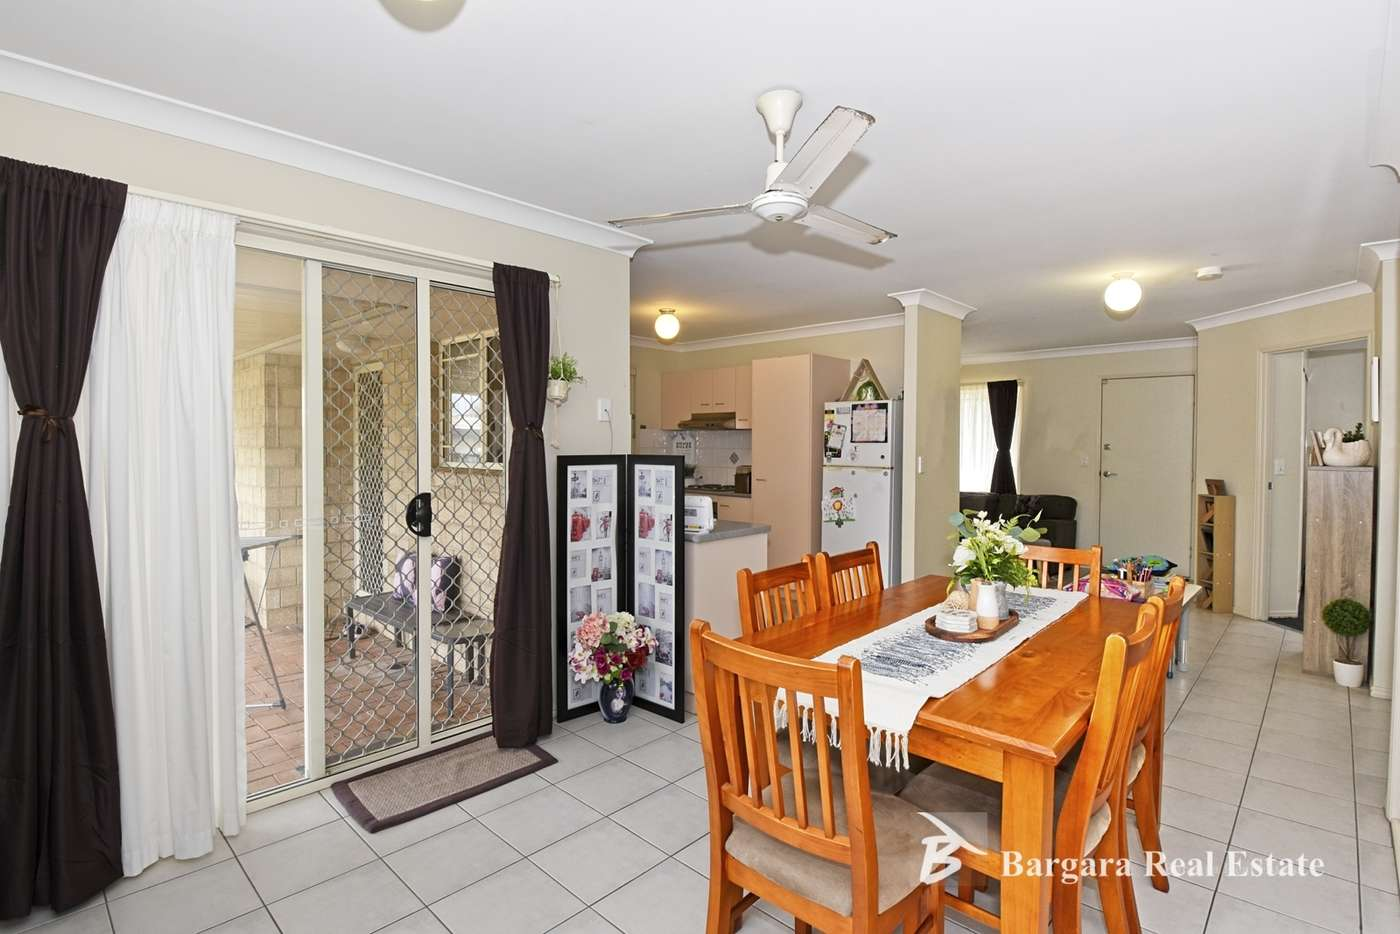 Sixth view of Homely house listing, 22 Heritage Dr, Bargara QLD 4670